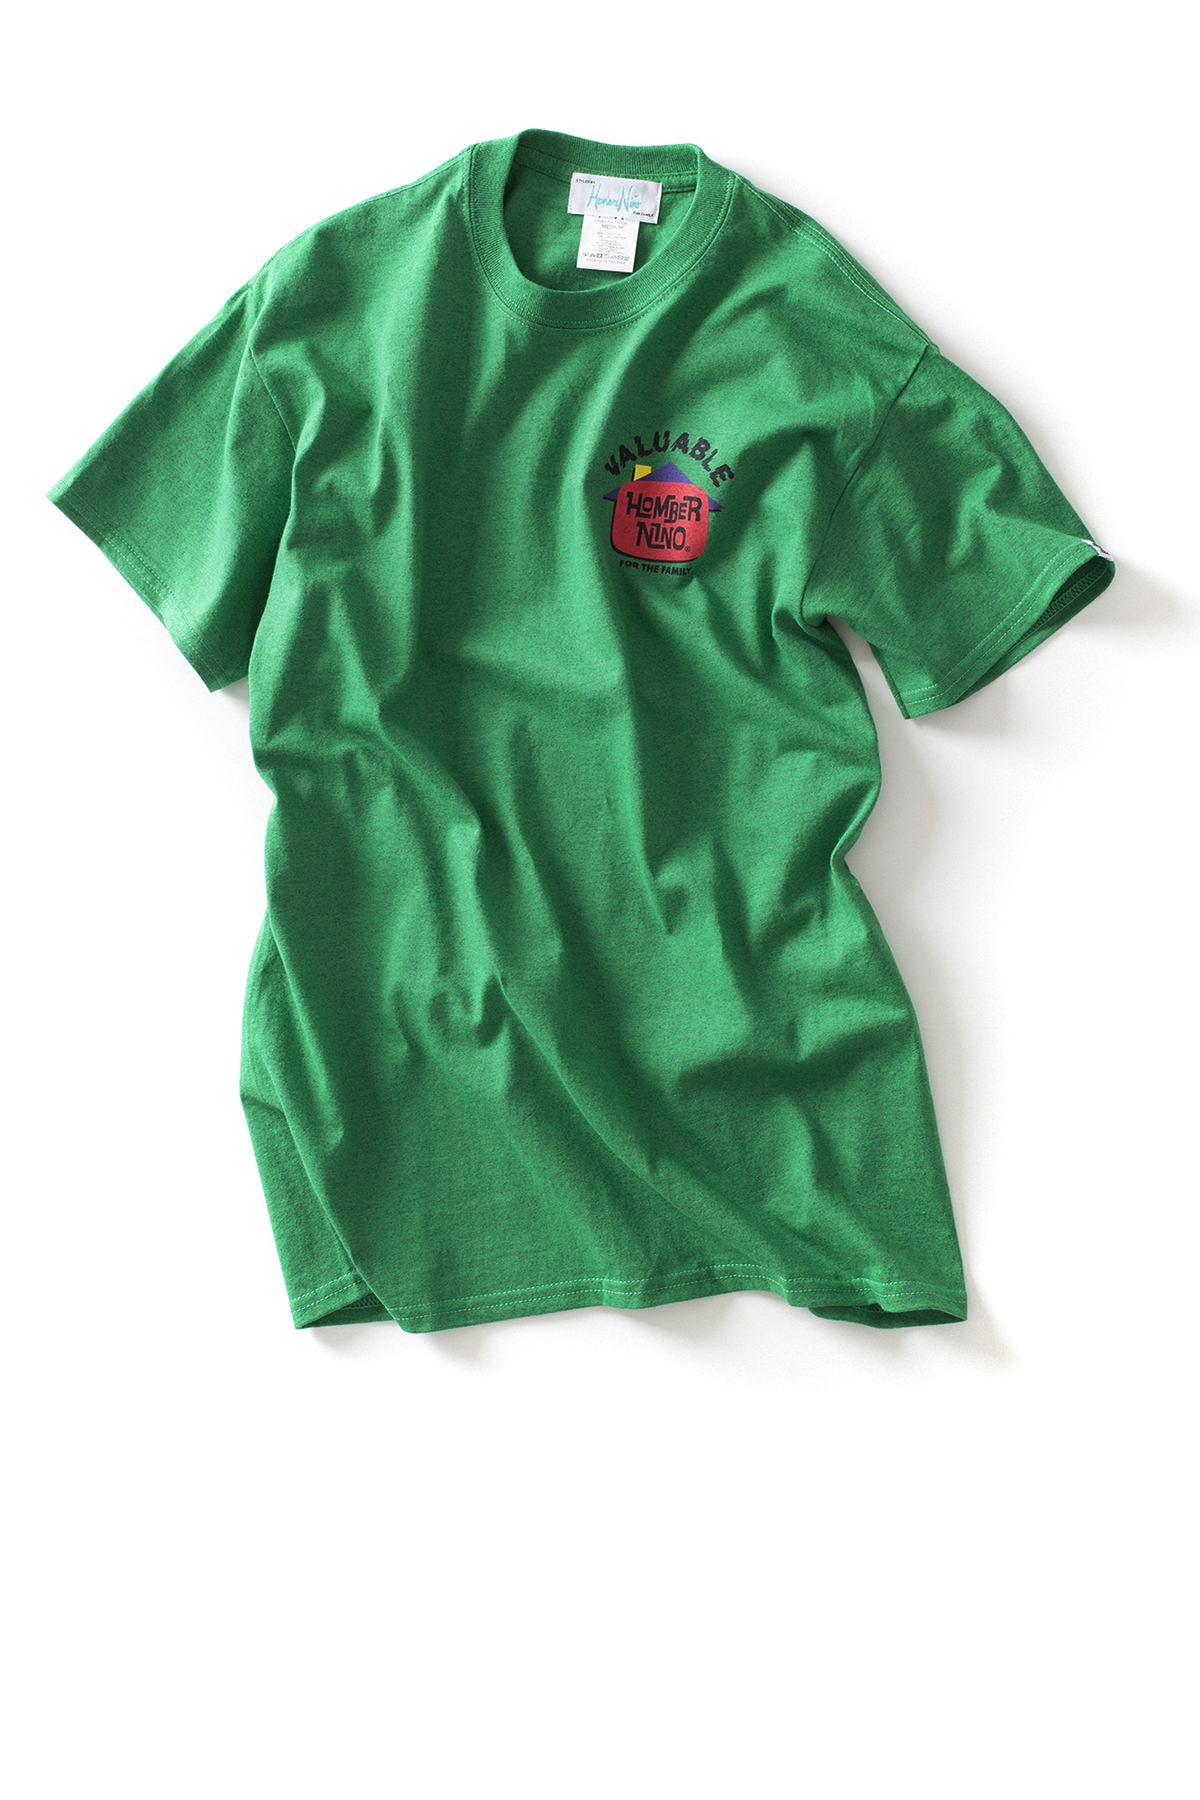 Hombre Niño : S/S Print Tee Valuable (Green)